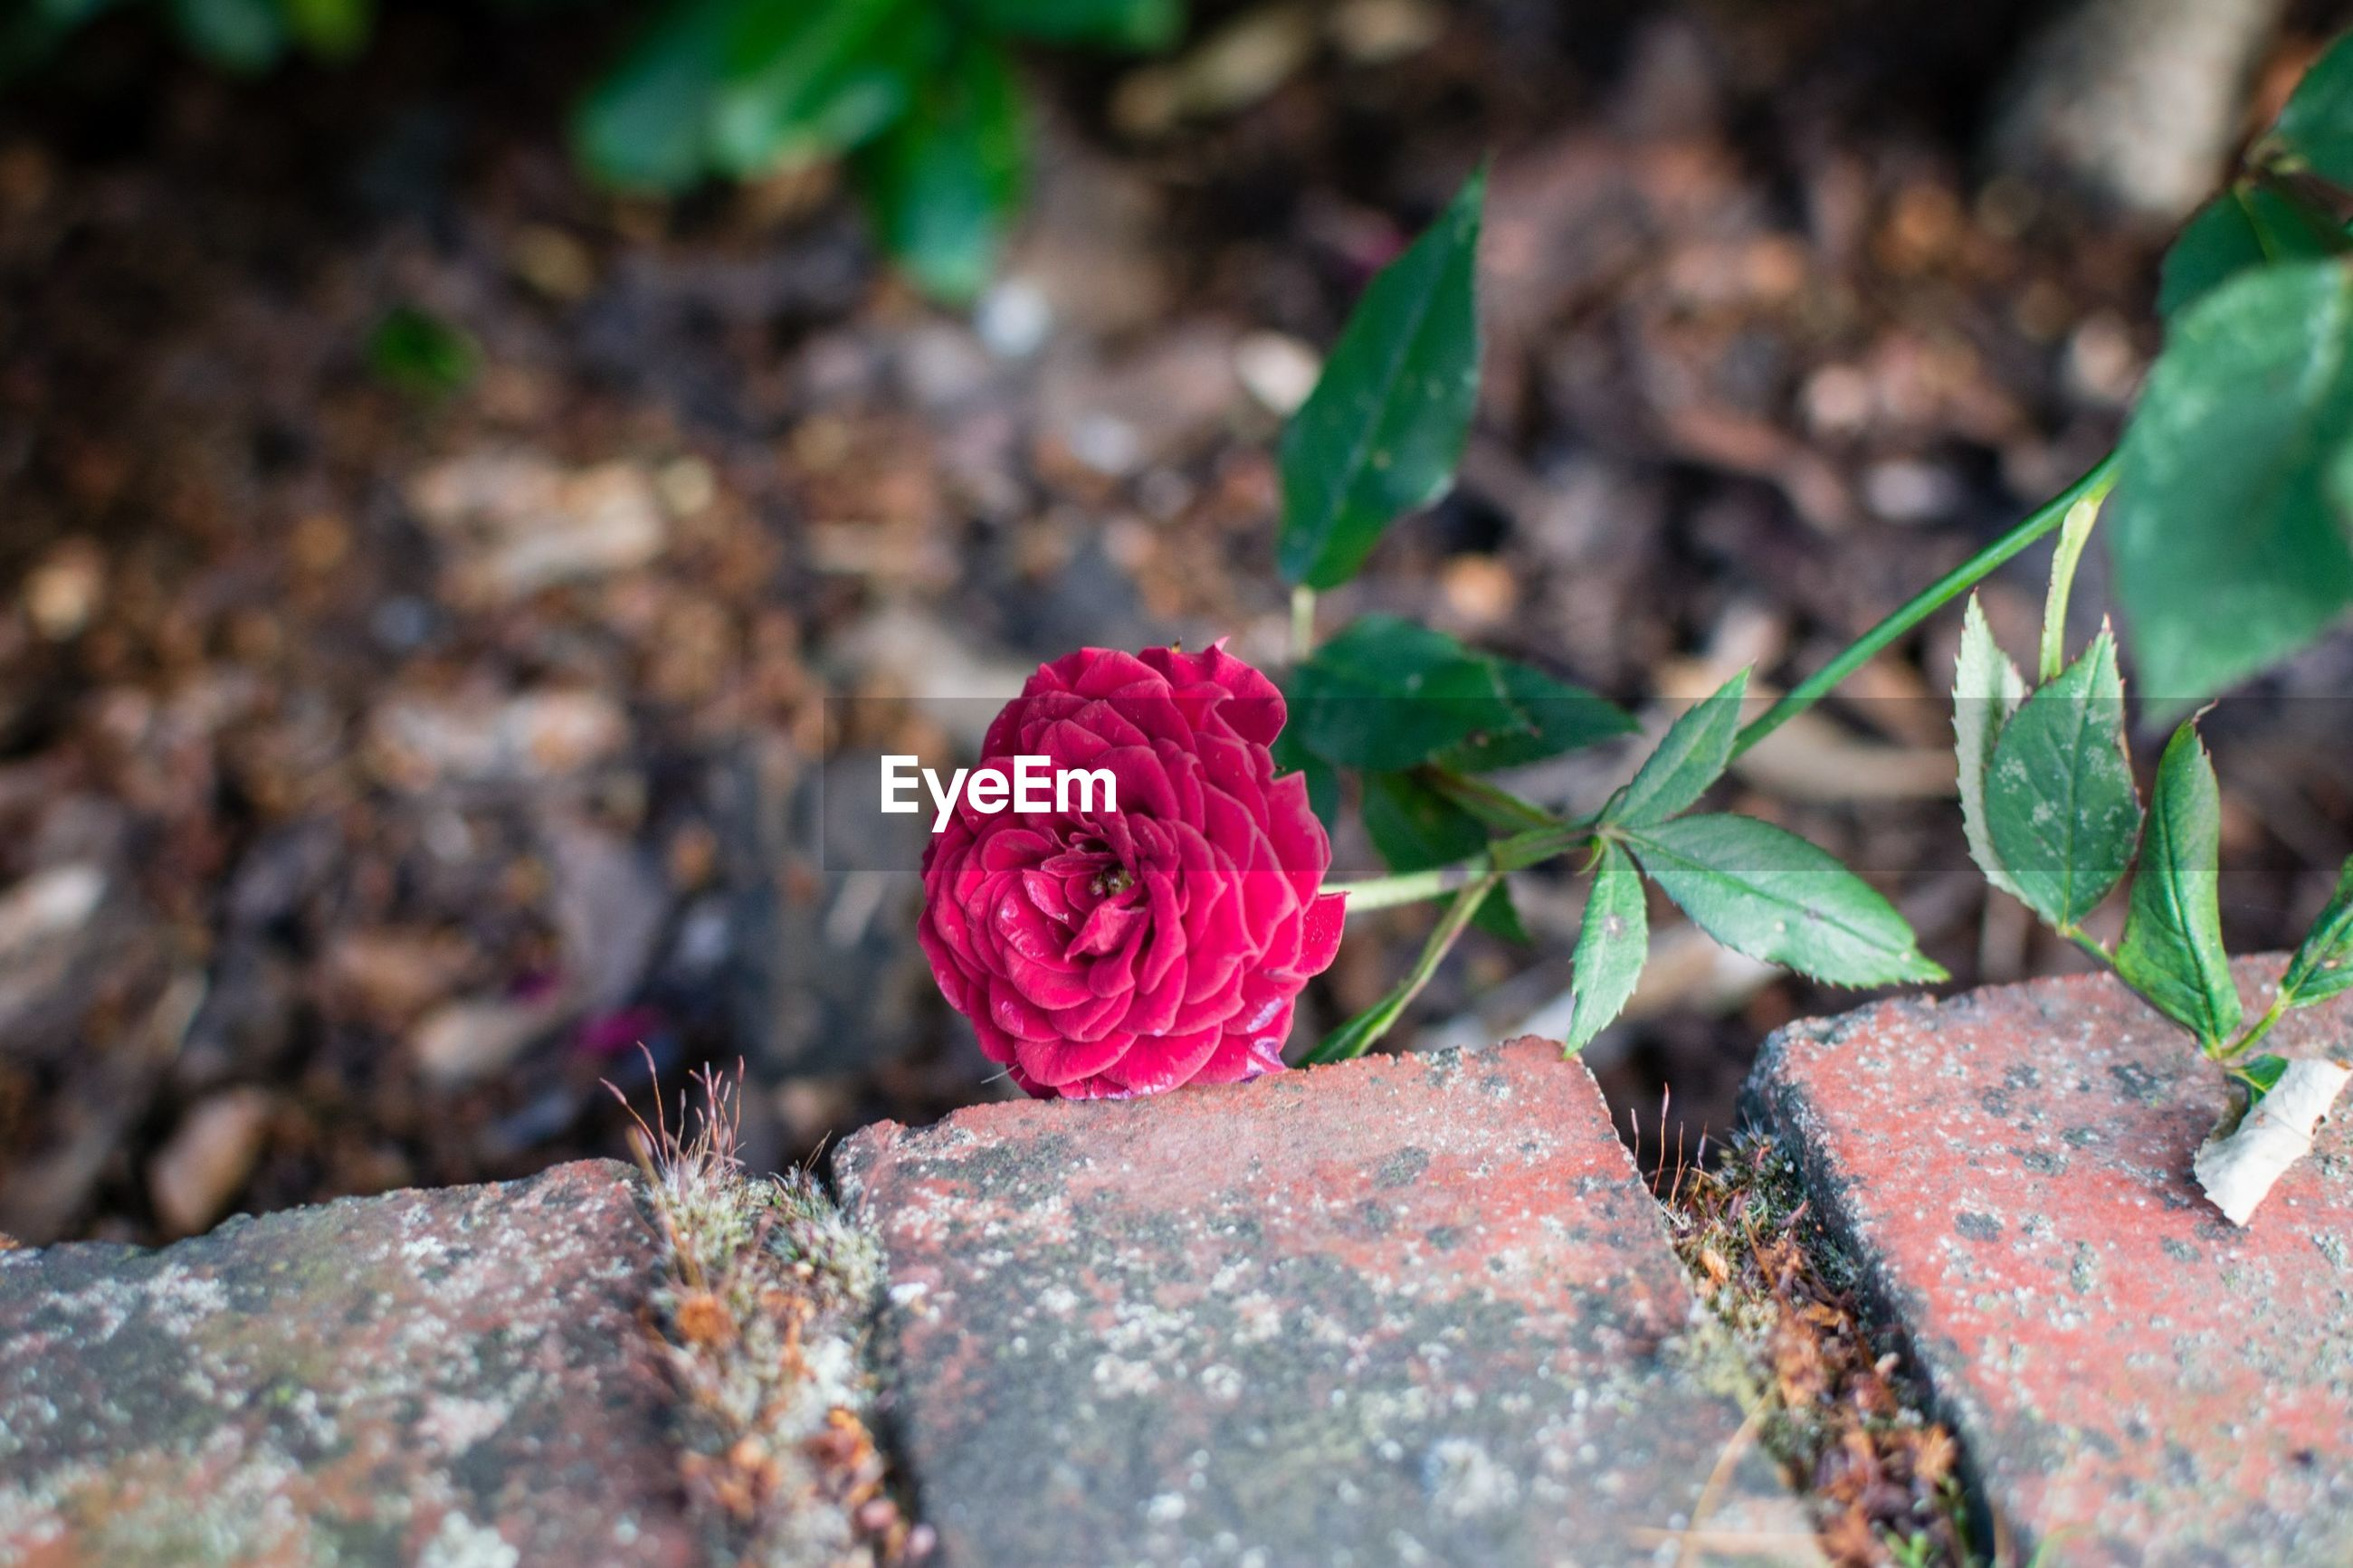 rock - object, close-up, growth, flower, selective focus, red, plant, nature, stone - object, fragility, leaf, focus on foreground, stone, pink color, beauty in nature, petal, outdoors, day, freshness, textured